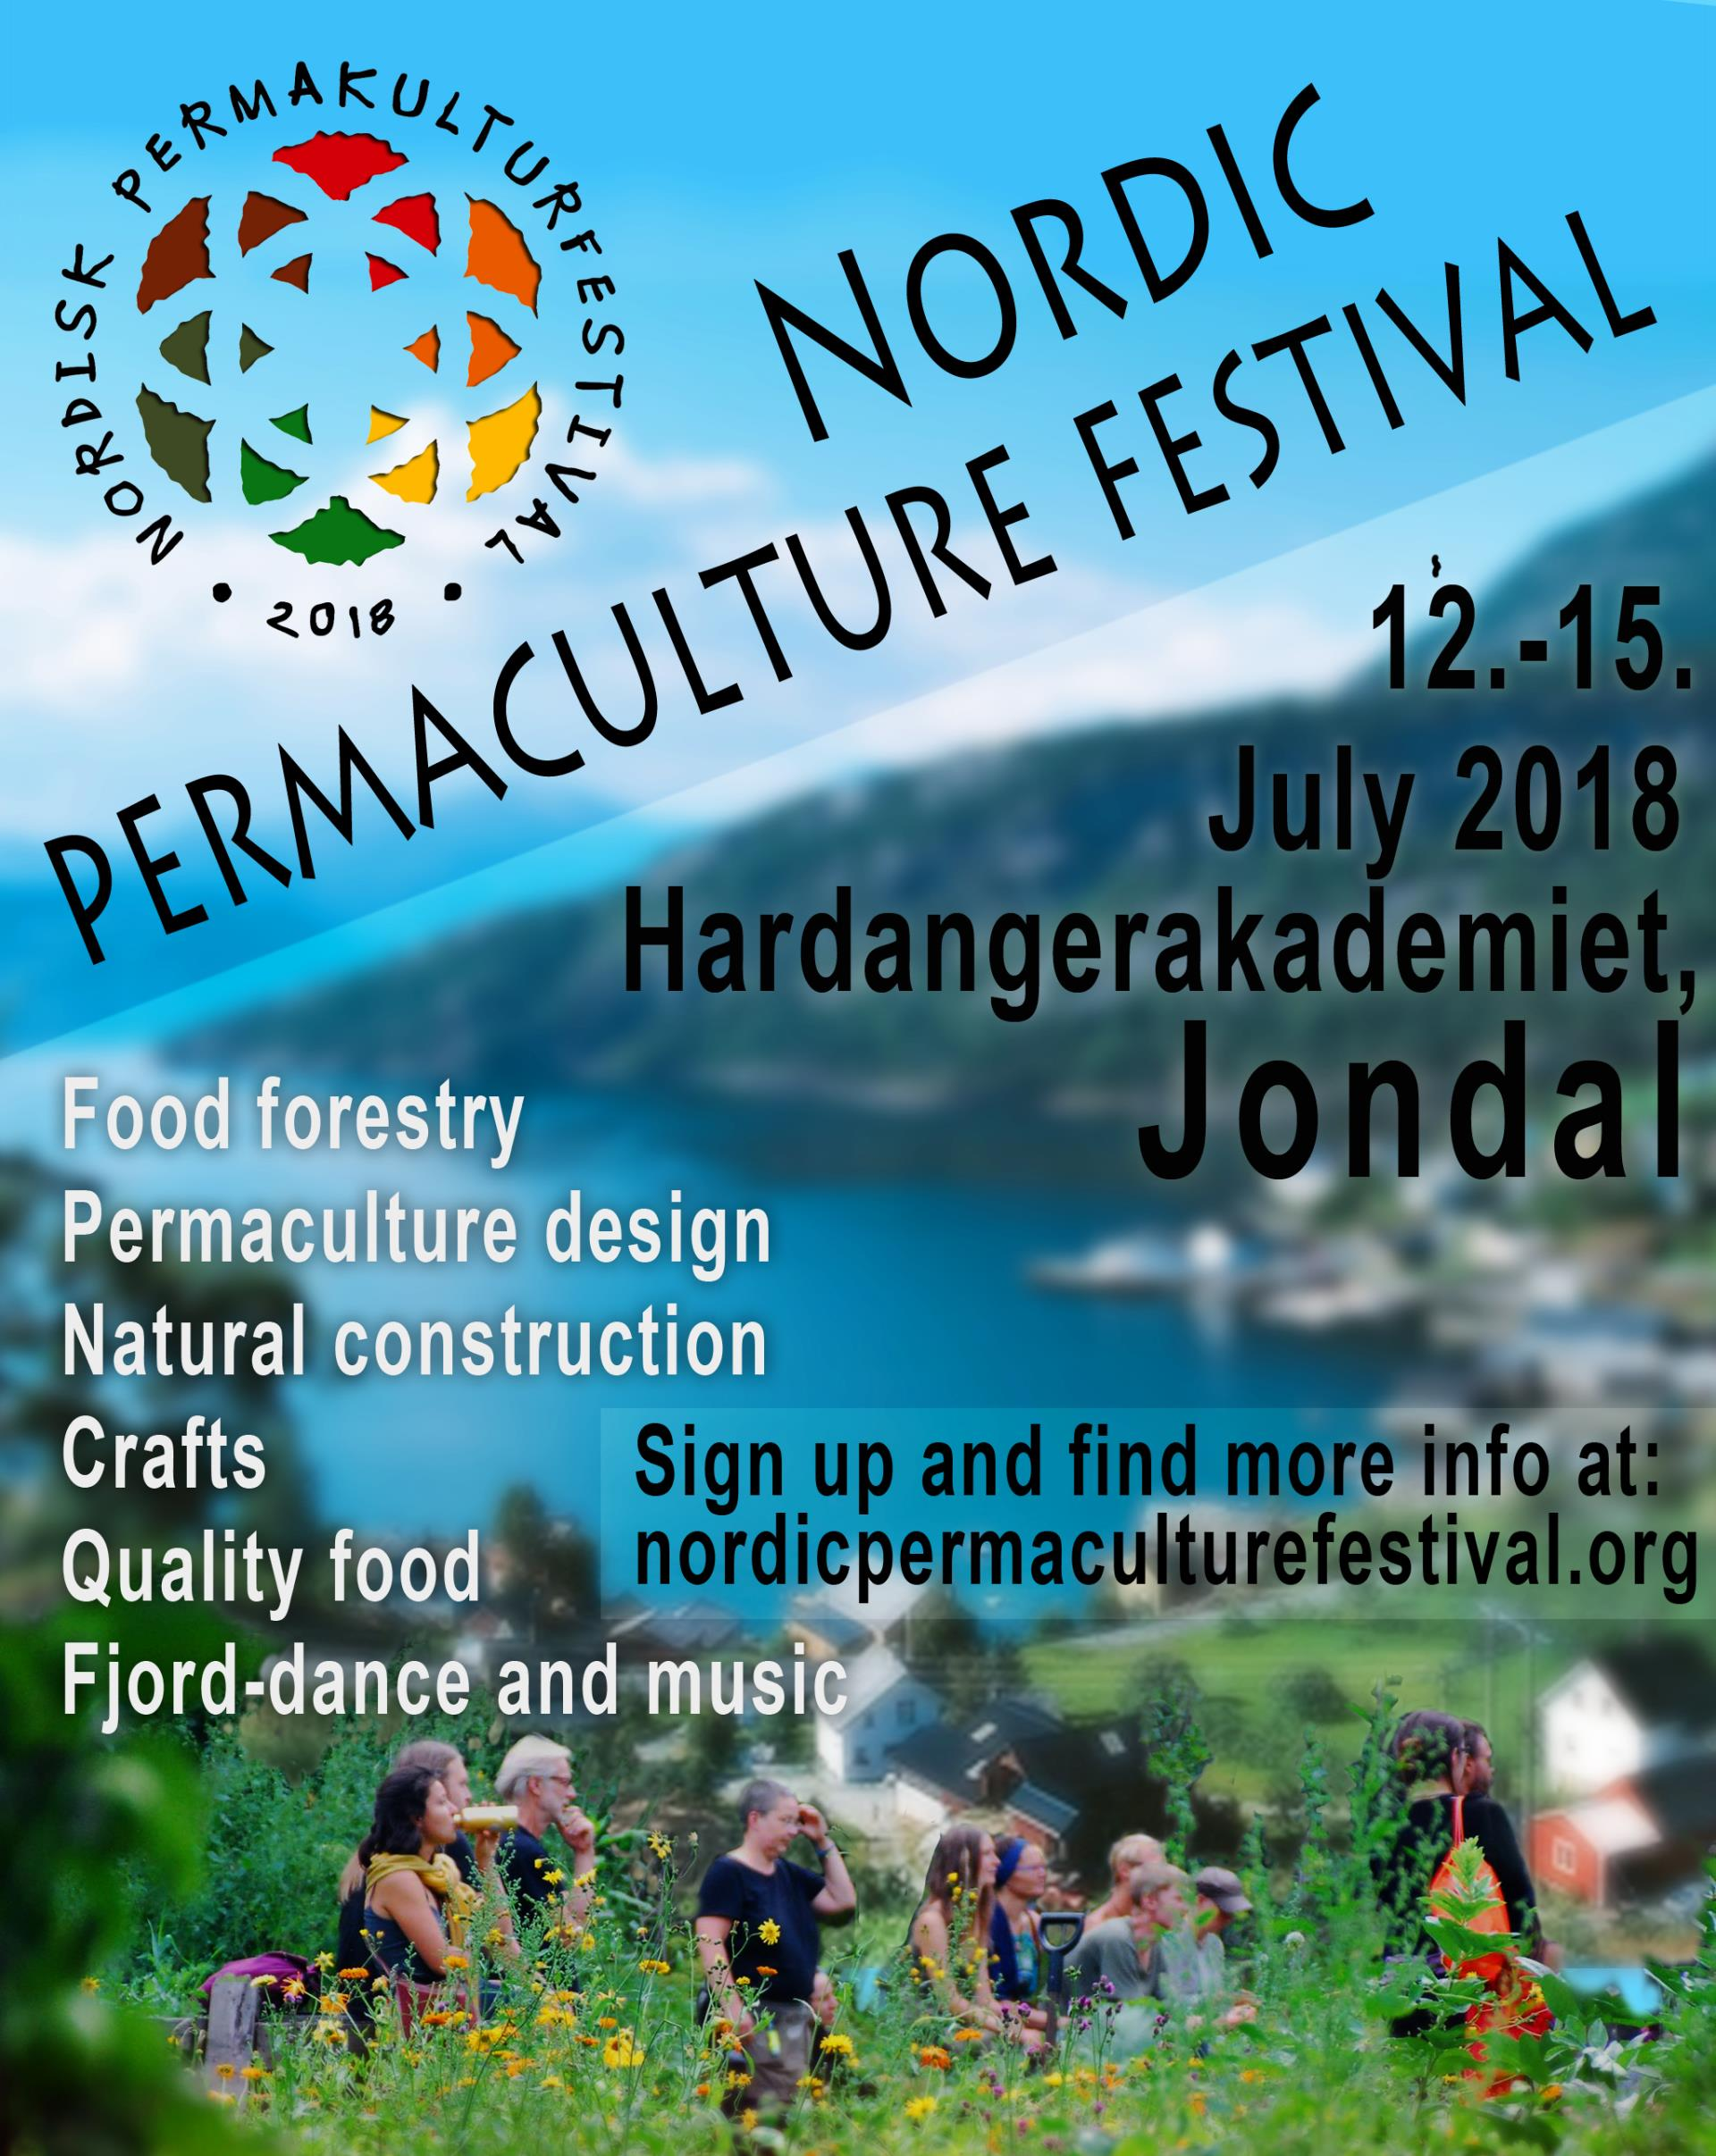 Nordic Permaculture Festival July 2018